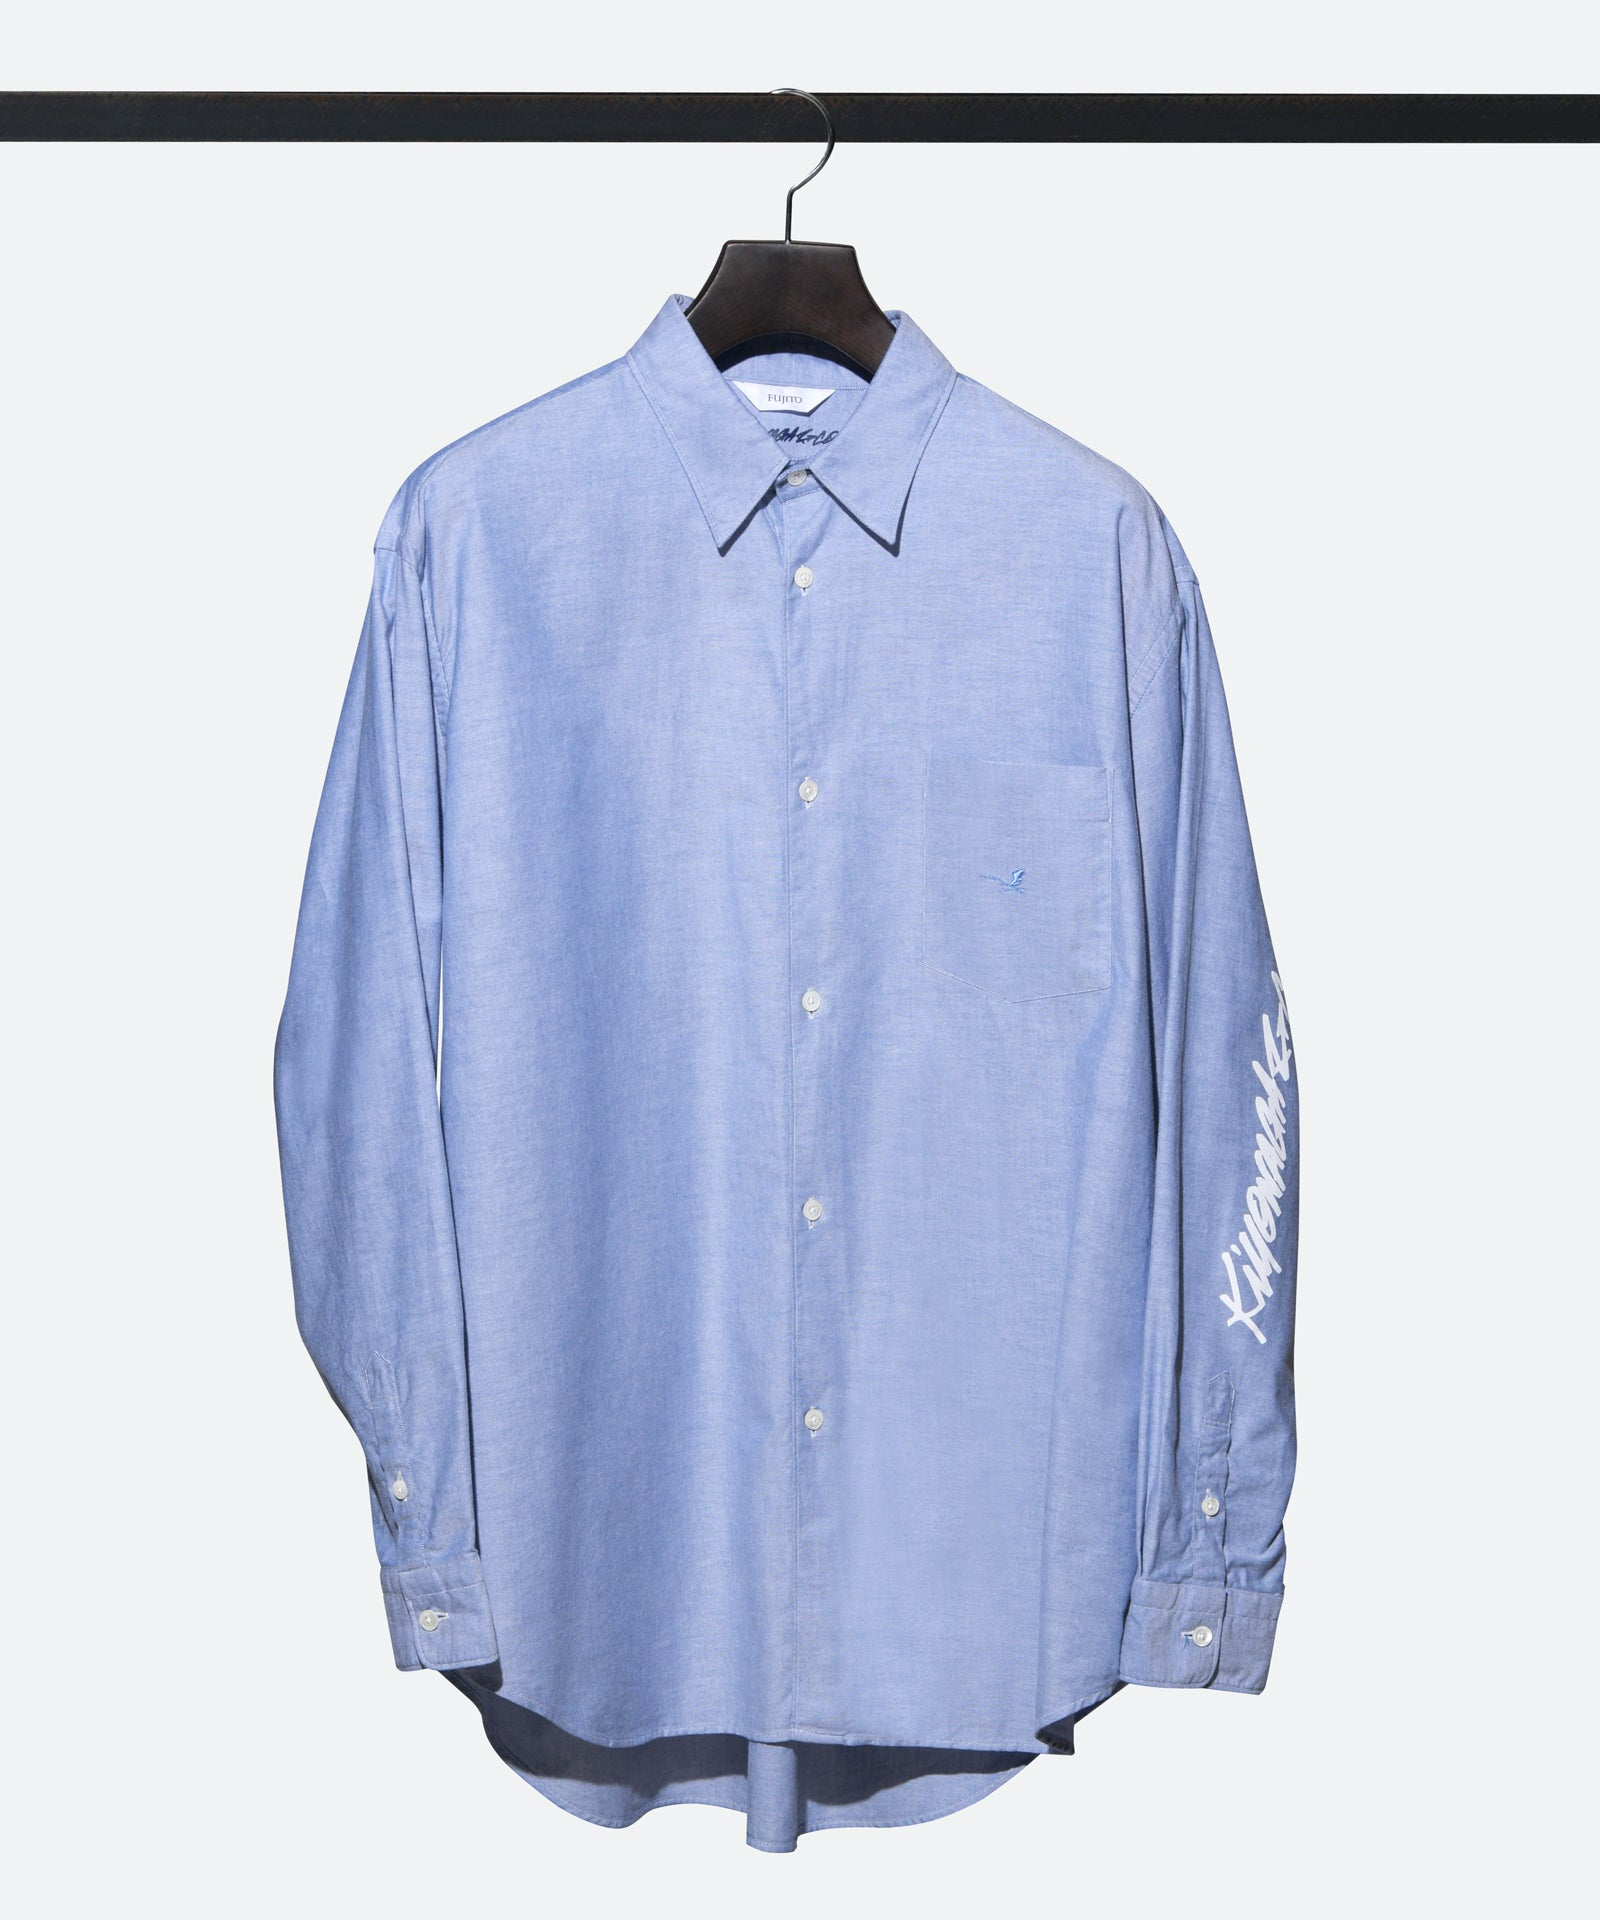 FUJITO B/S SHIRT Signature By YOICHIRO UCHIDA - BLUE